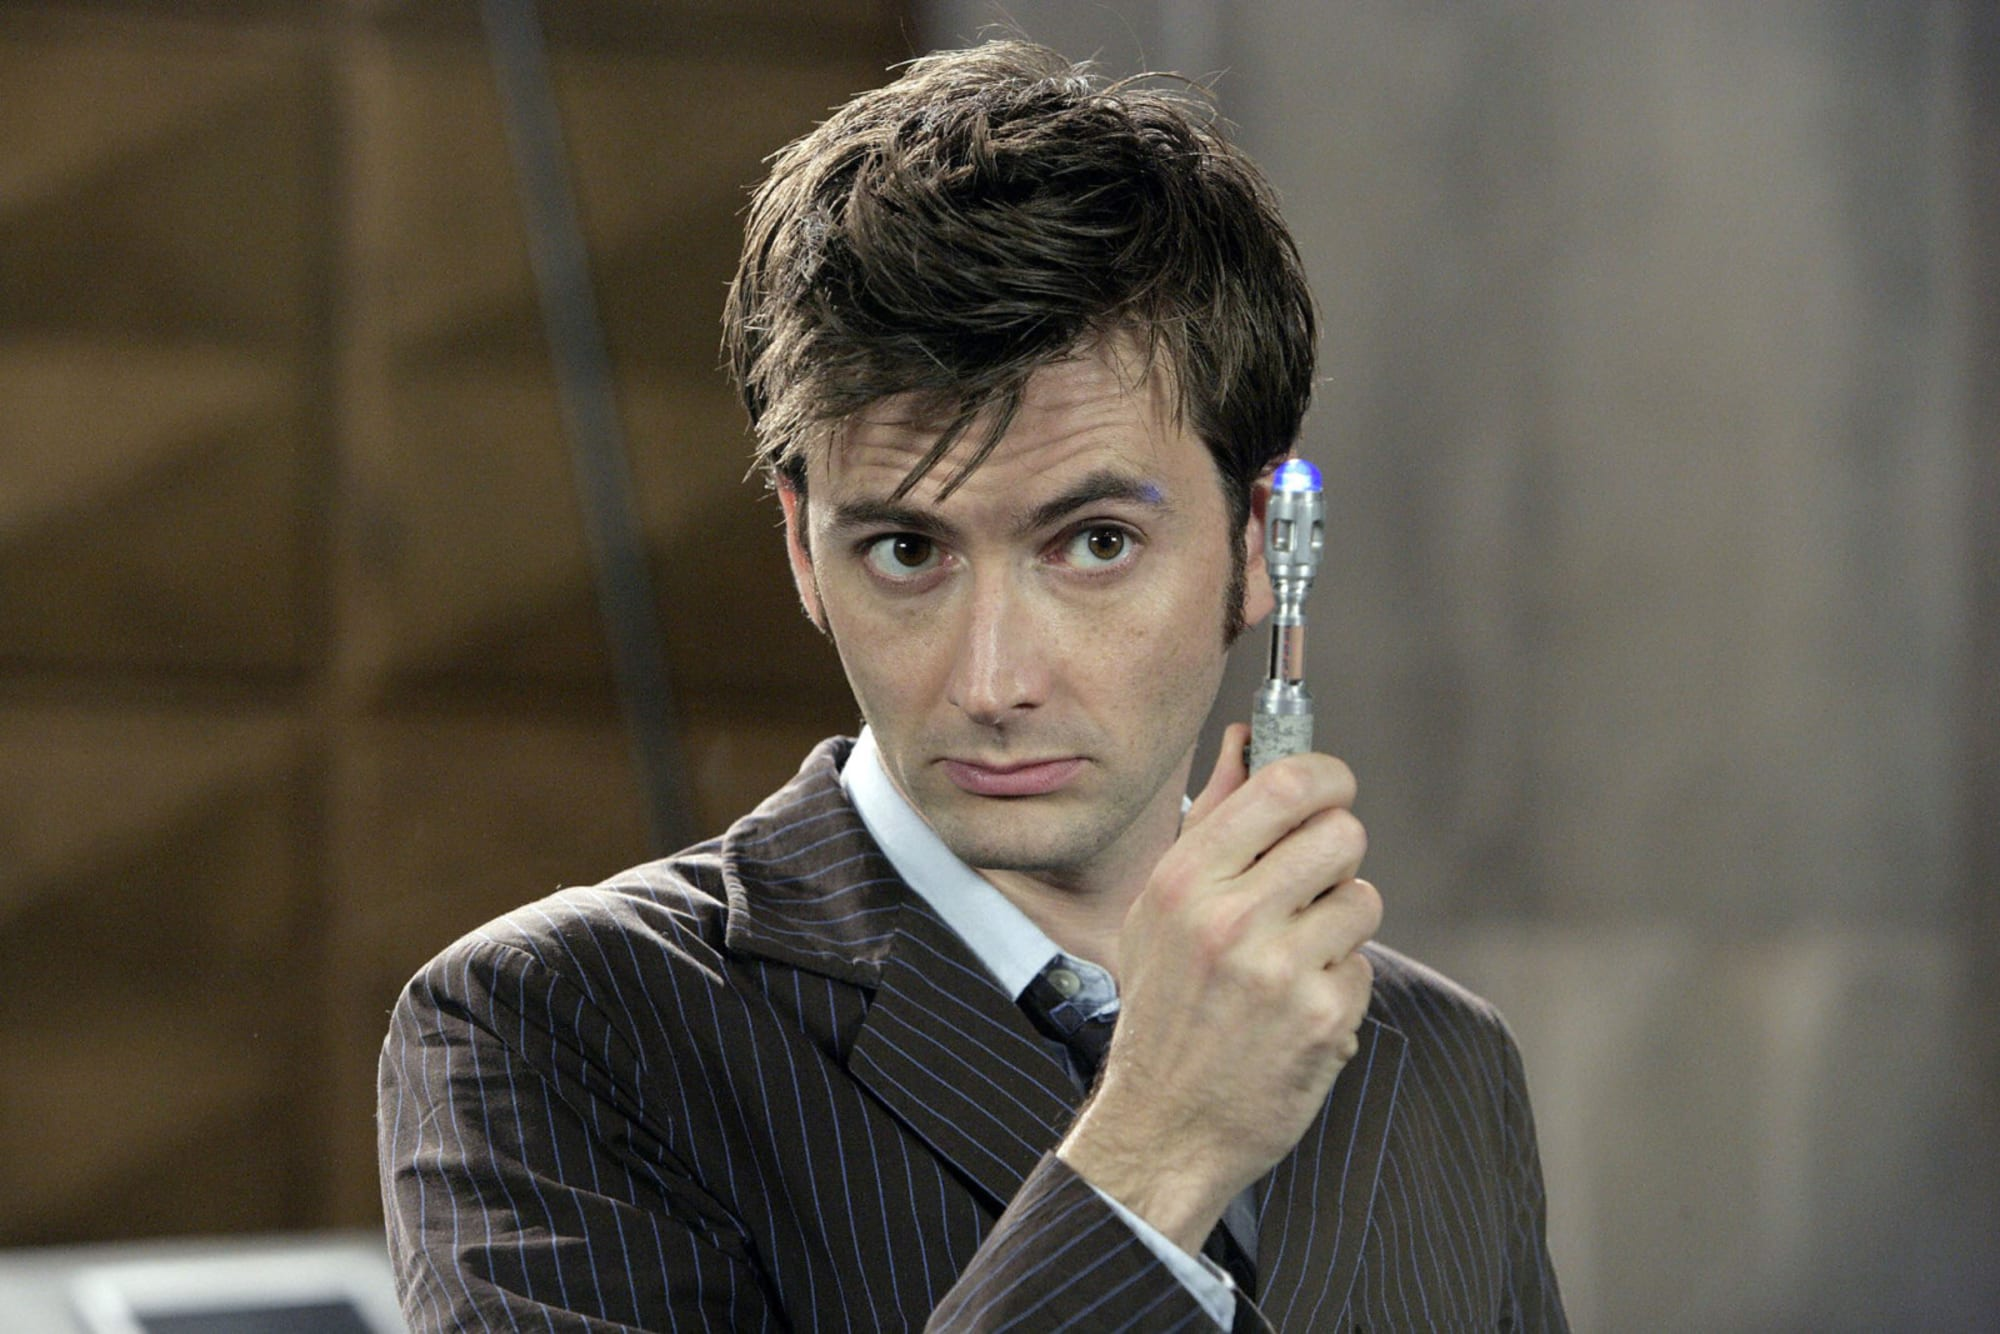 Doctor Who news: David Tennant will join Jodie Whittaker for new video game in 2021